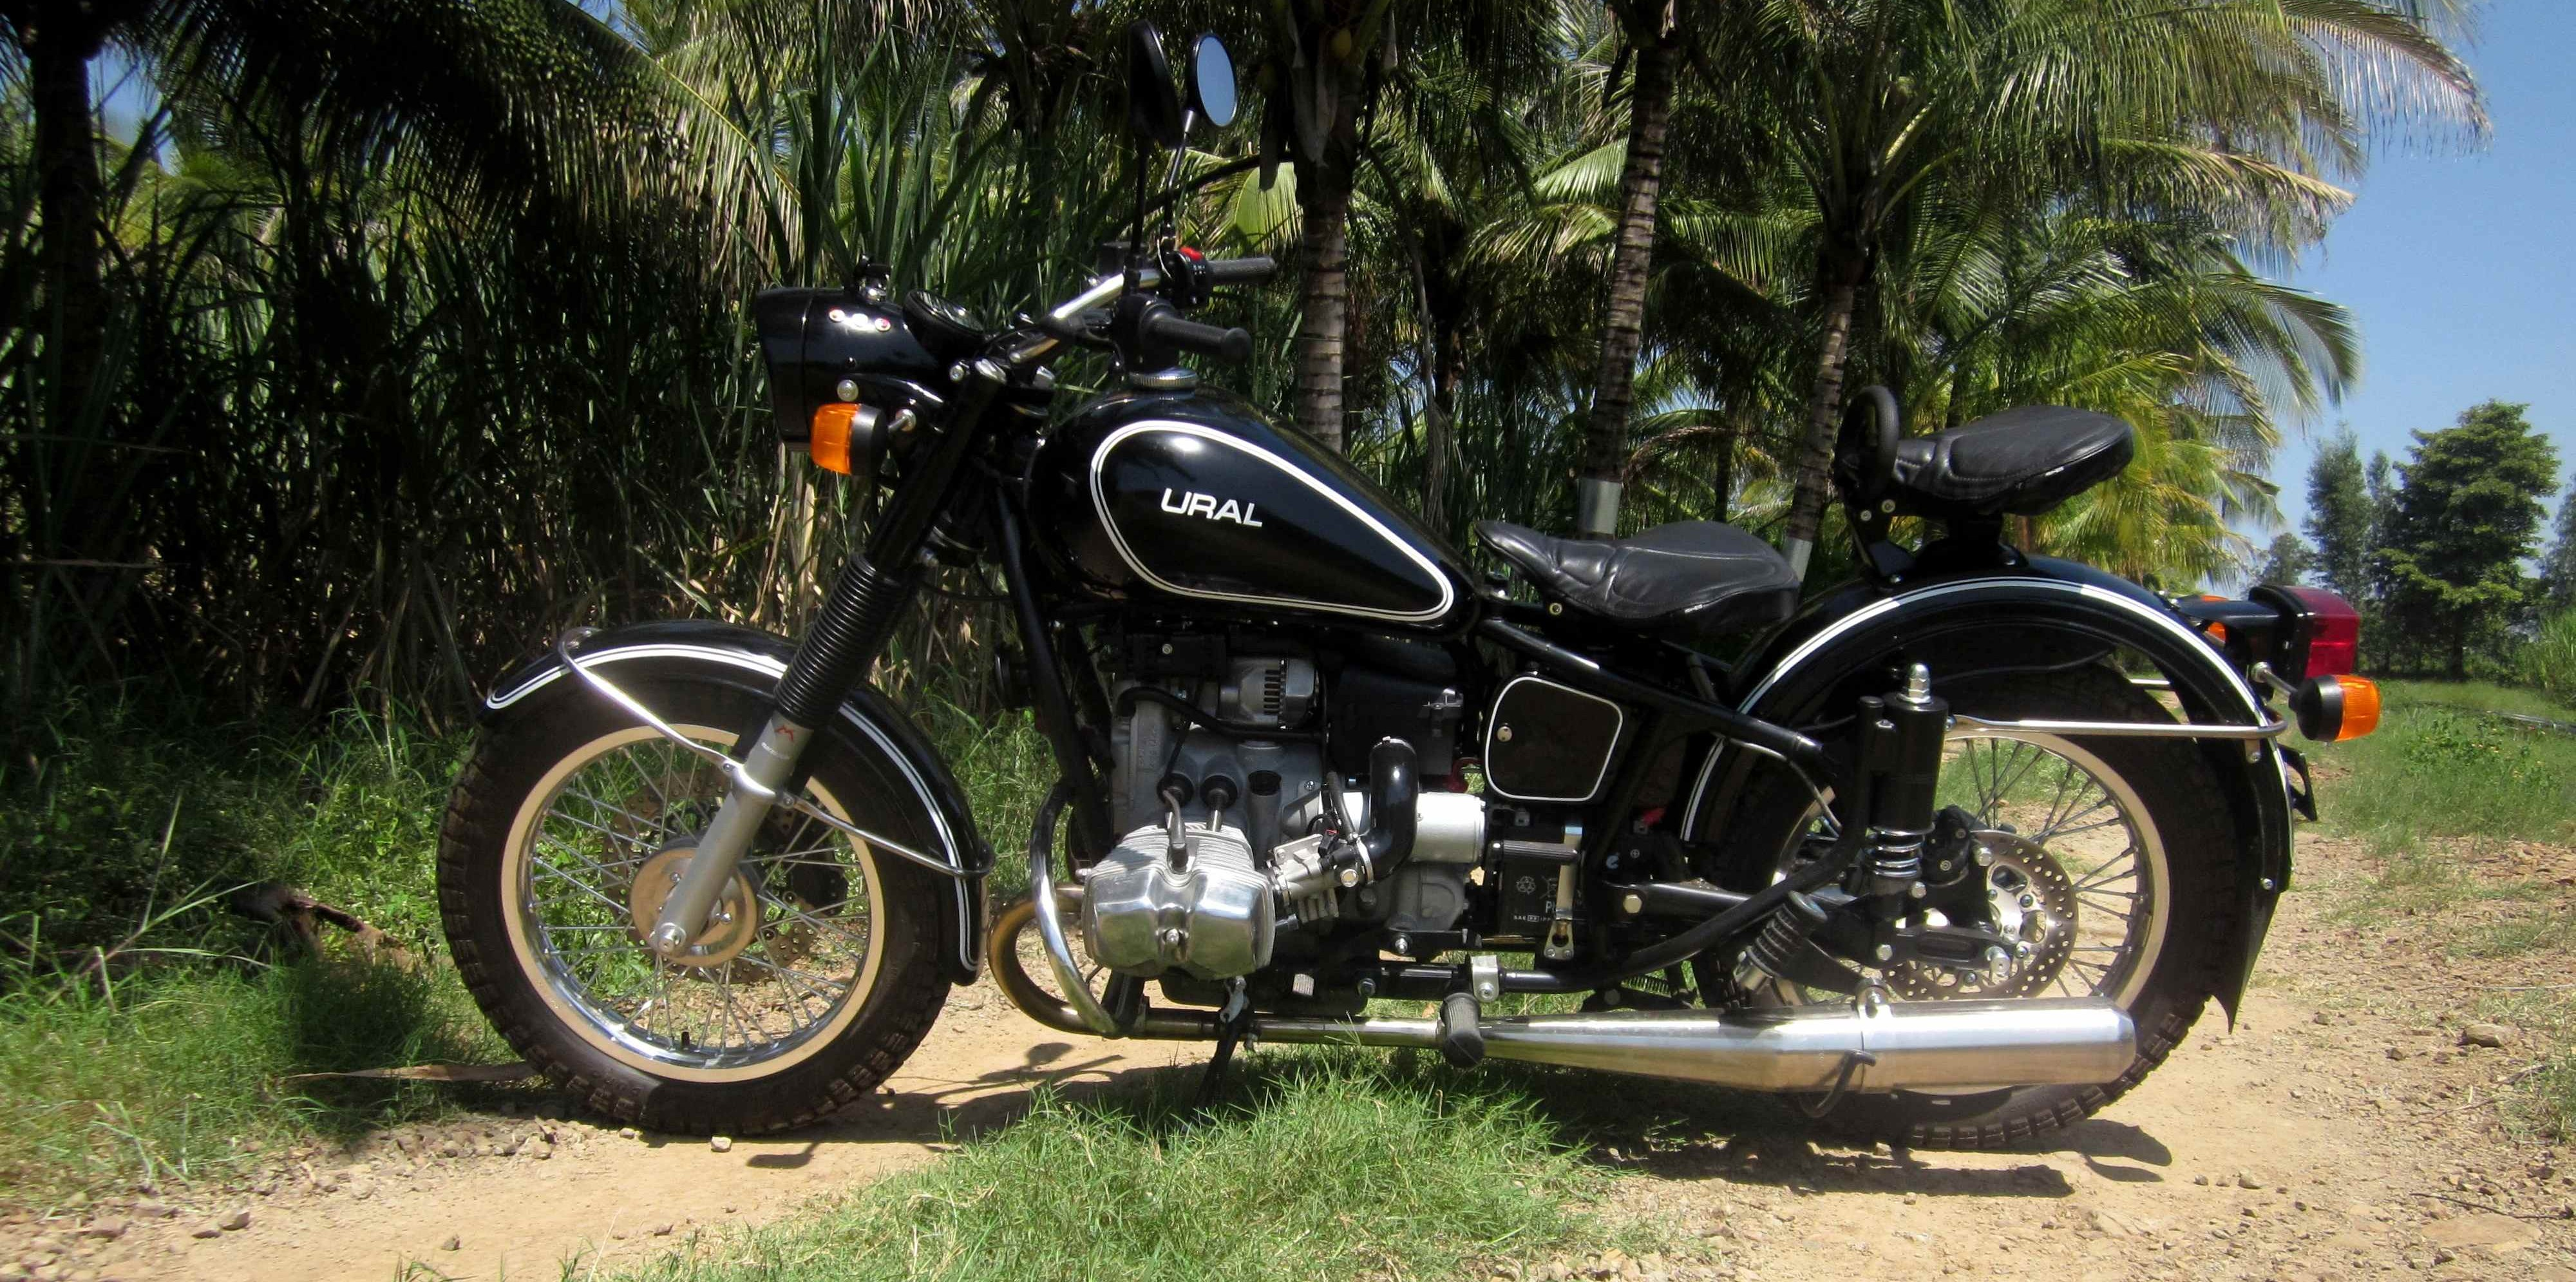 Xclusive Review: Ural M70 ridden. Warhorse untamed  …!!